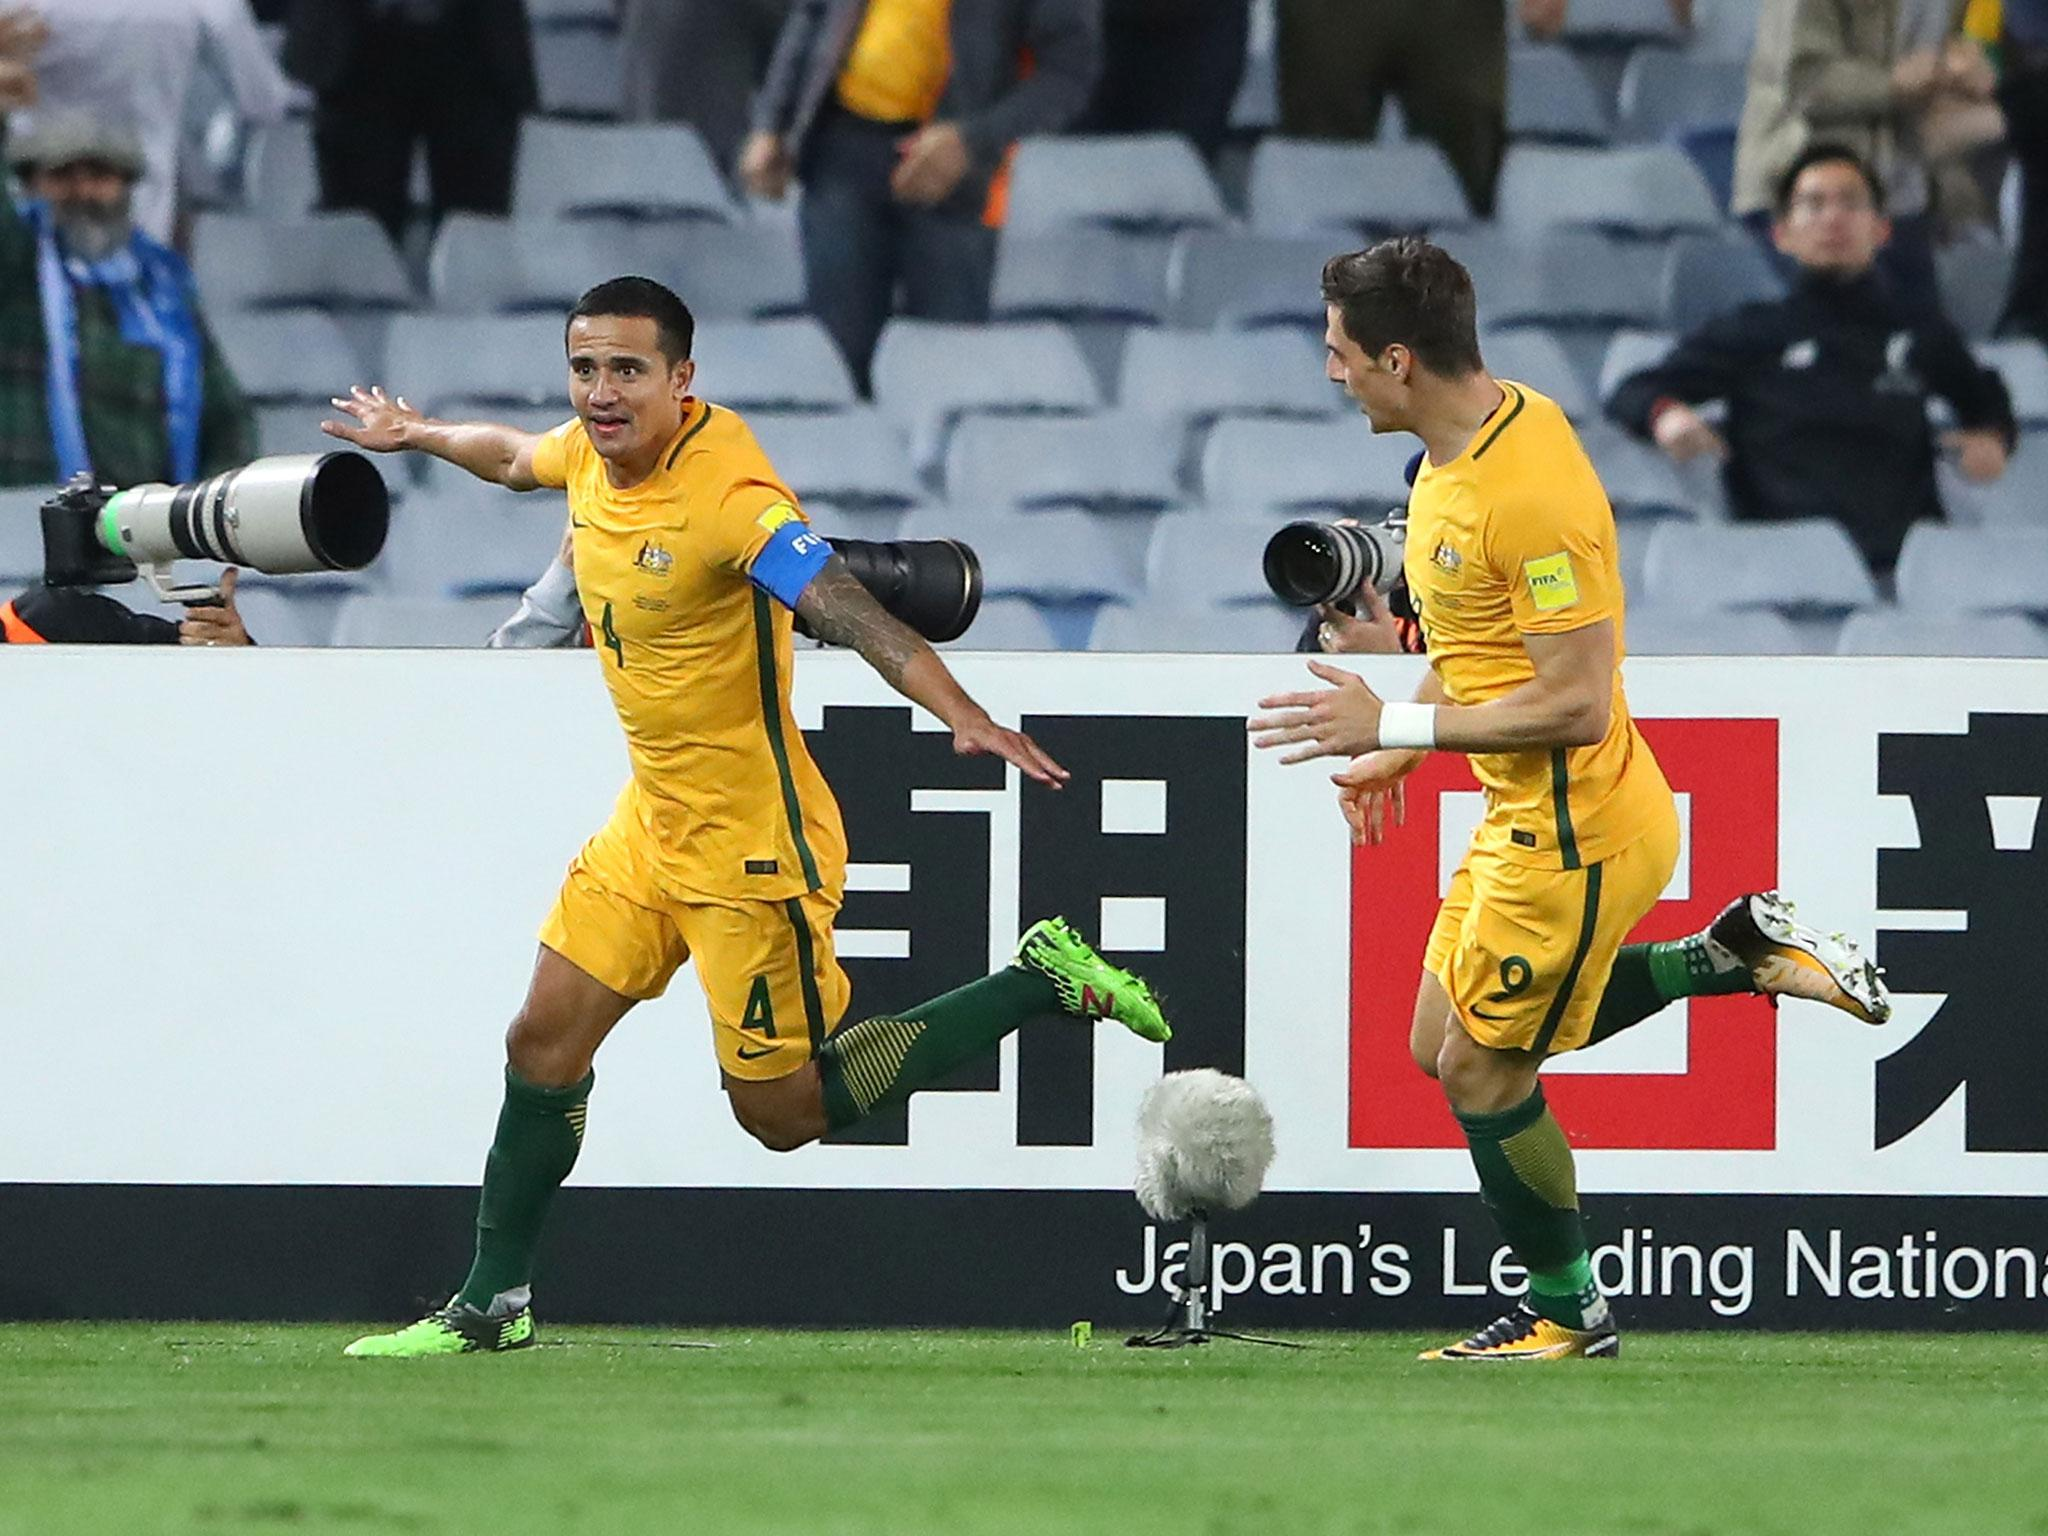 Tim Cahill was paid to do a sponsored goal celebration in crucial World Cup play-off